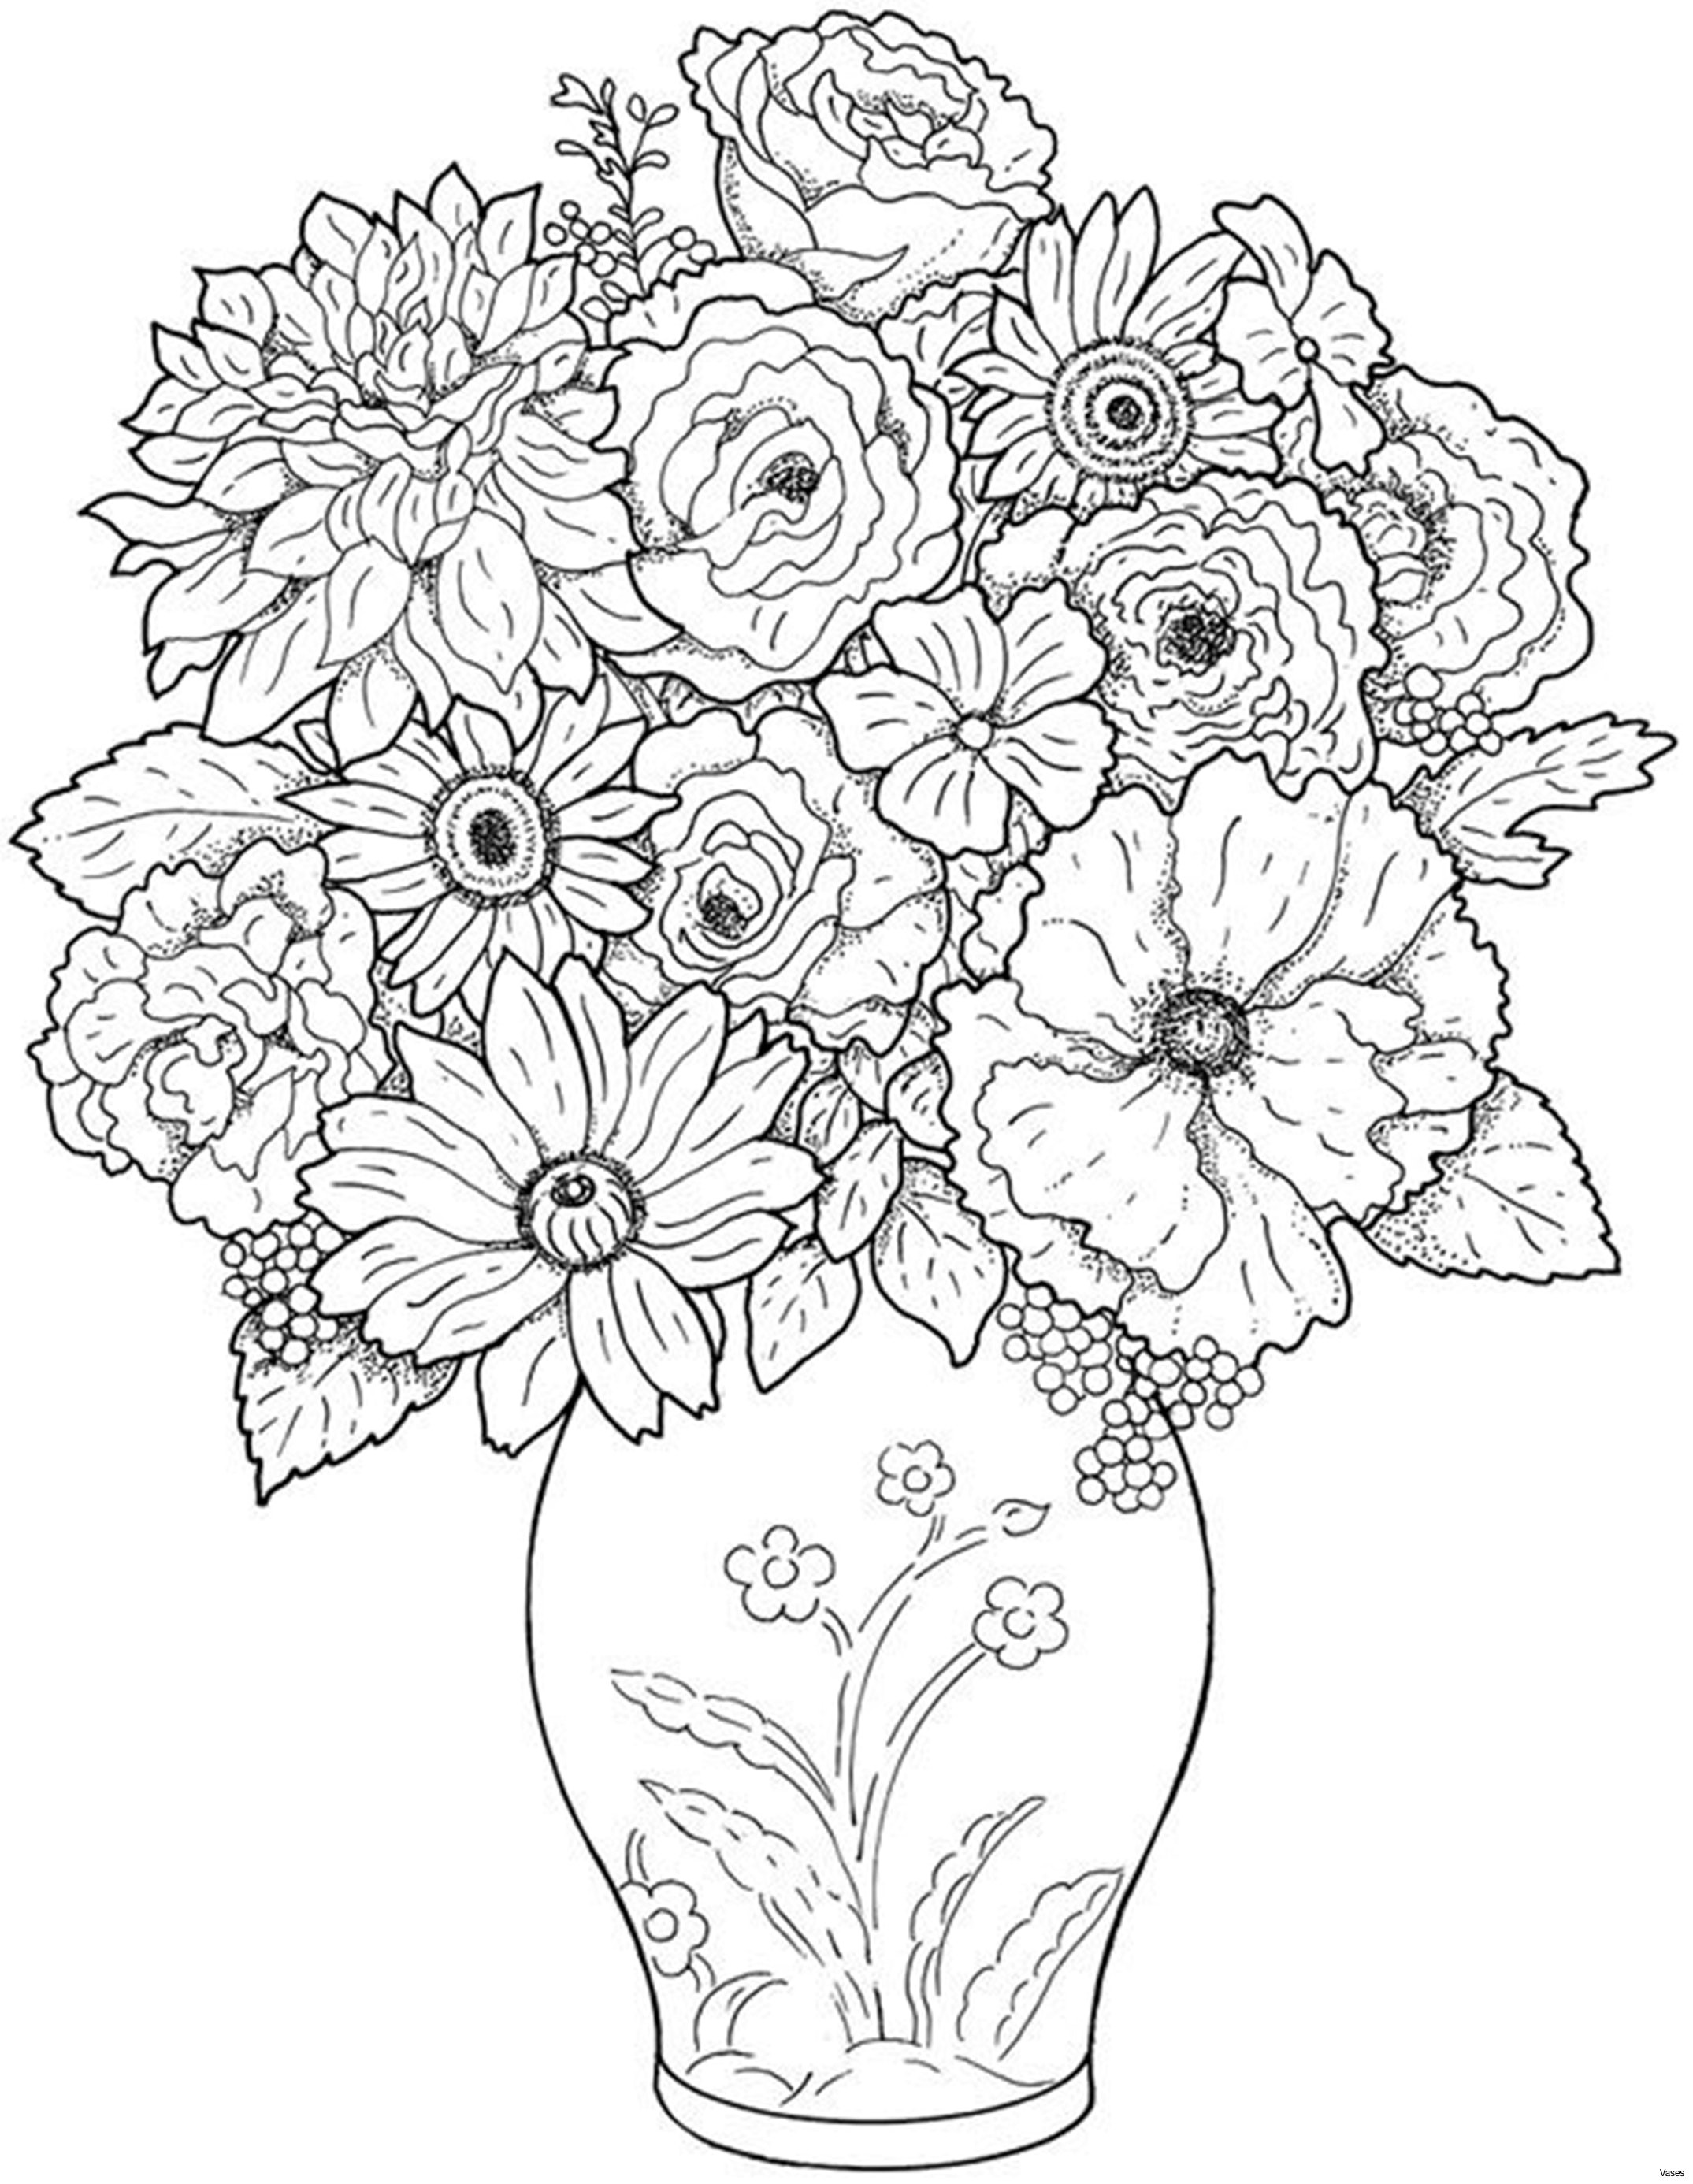 2149x2772 Tokyo Ghoul Coloring Pages Beautiful Best Tokyo Ghoul Images